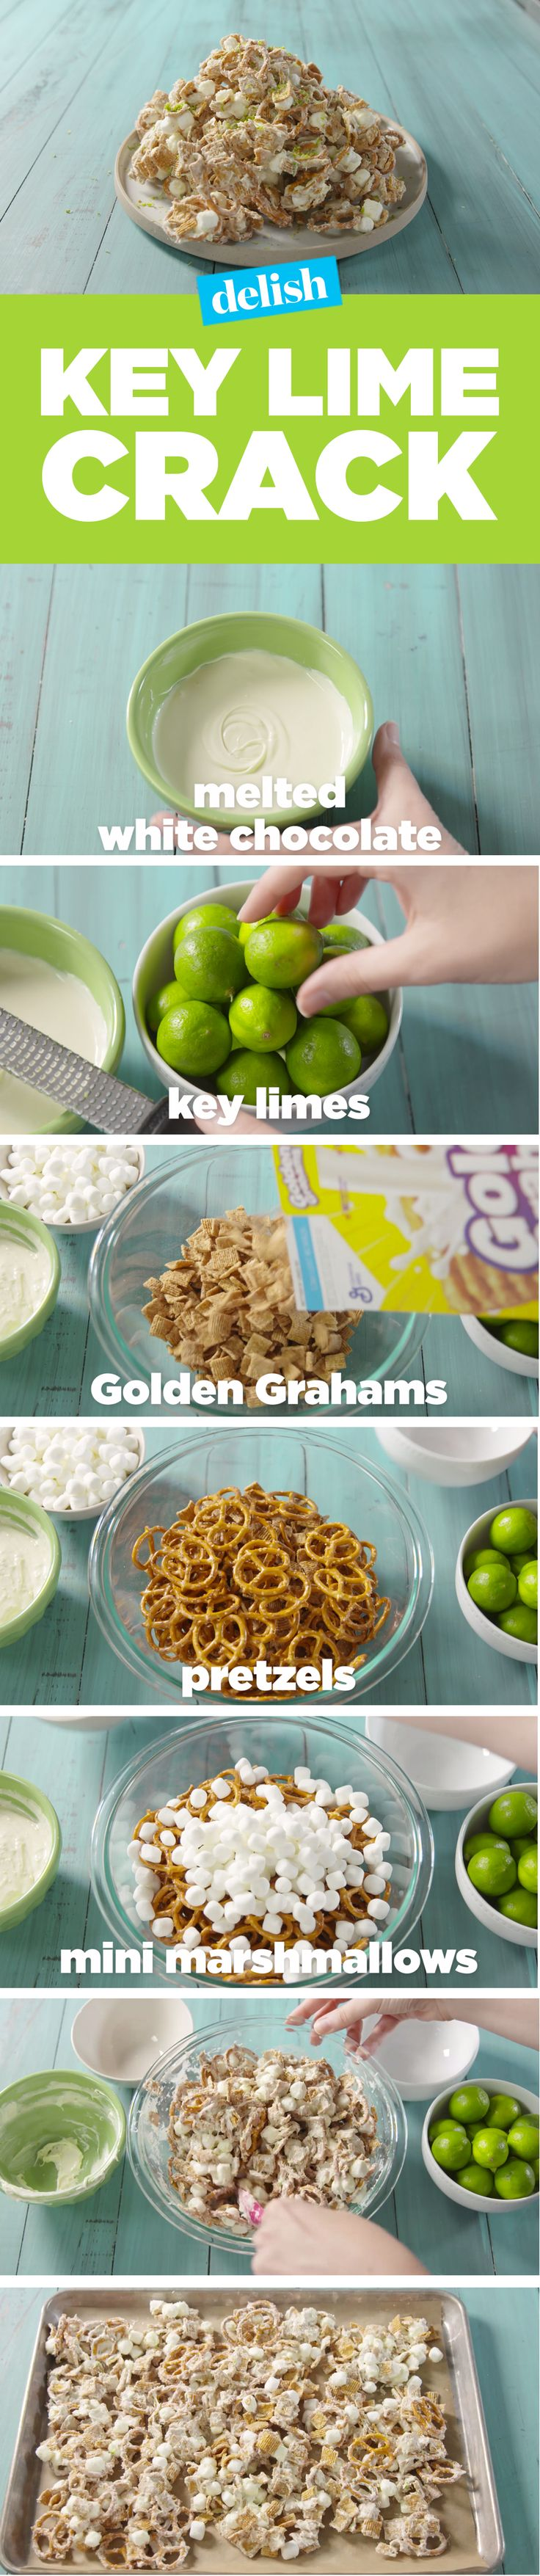 Key Lime Crack is going to be your new favorite snack. Get the recipe on Delish.com.